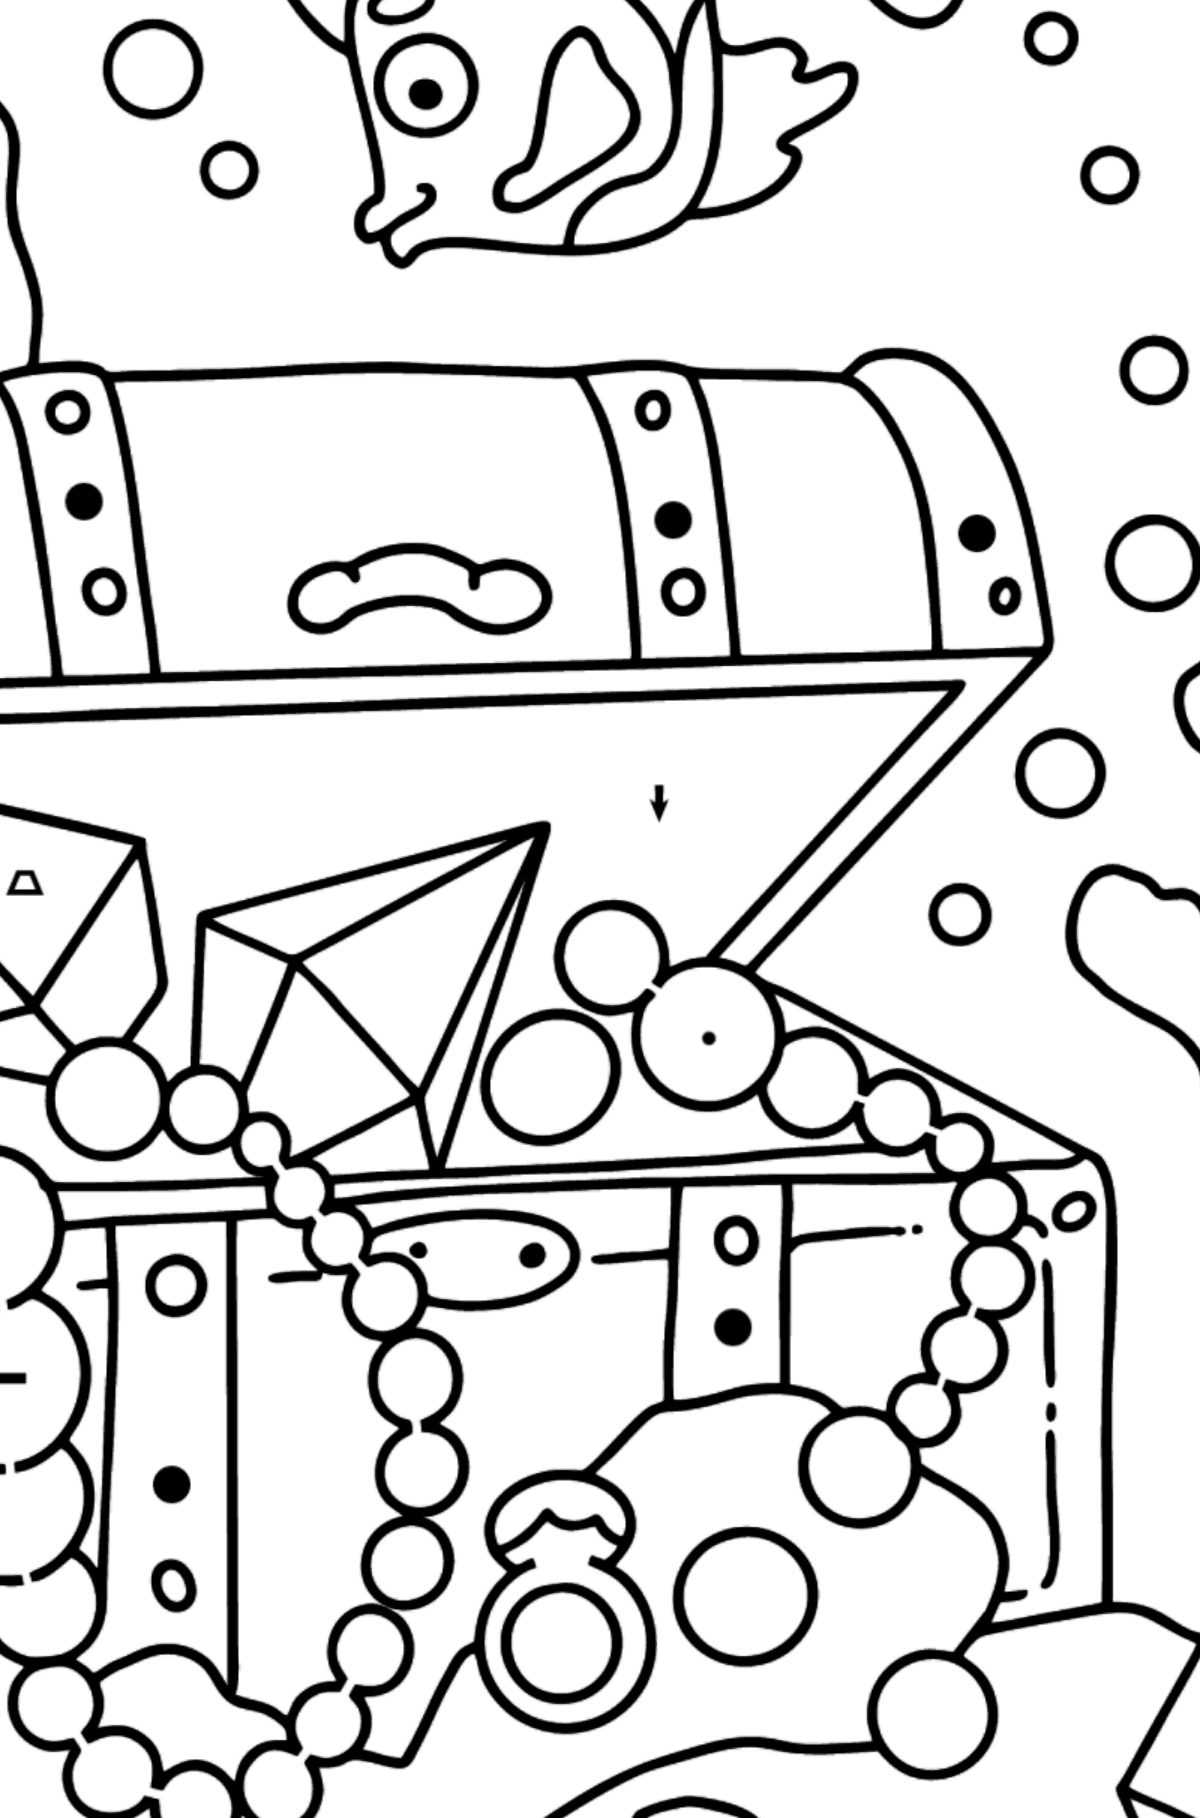 Coloring Page - A Fish is Swimming Around a Pirate's Chest - Coloring by Symbols and Geometric Shapes for Kids